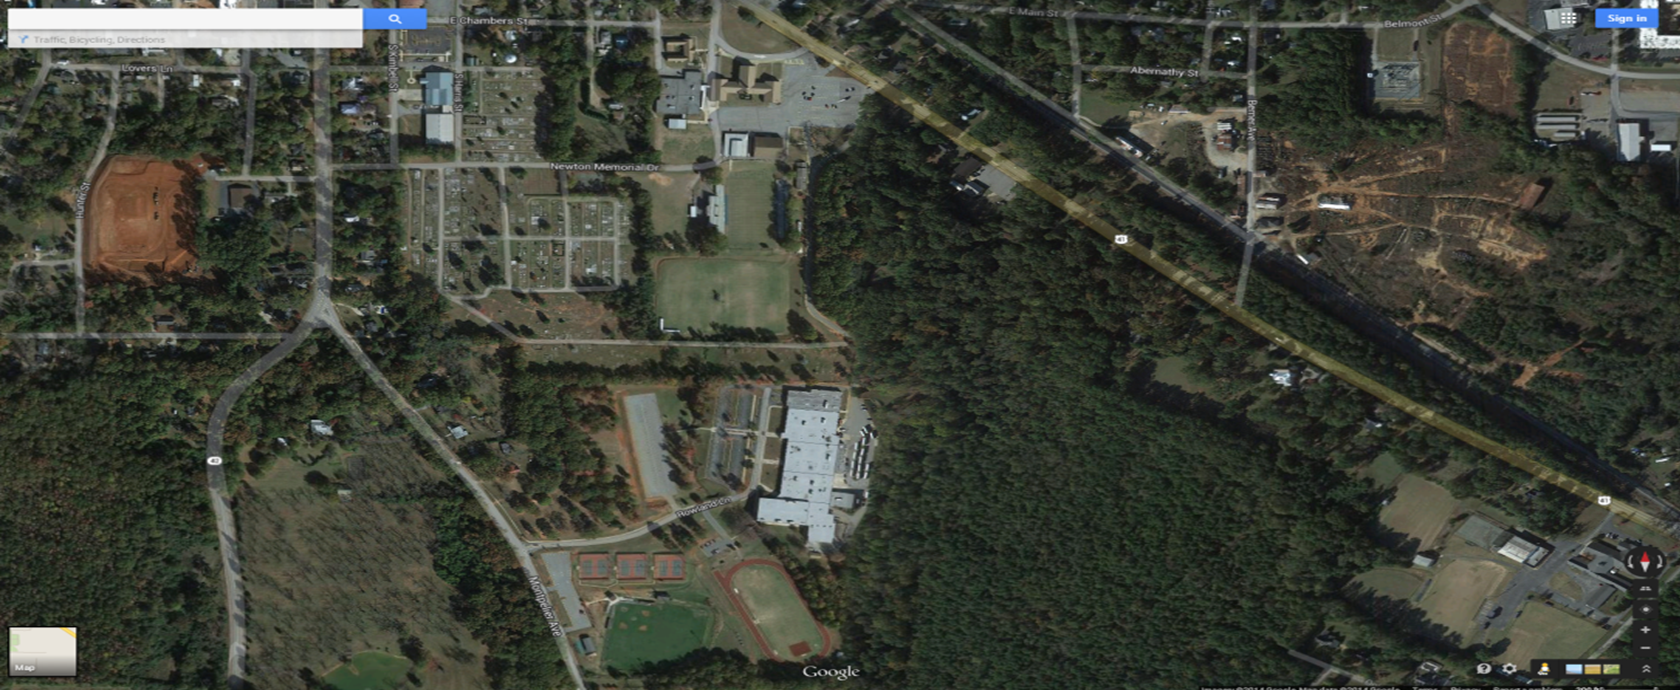 Aerial View of Main Campus – has 28 acres, divided by the cemetery into North and South campus. North campus has middle school classrooms, gym, BOE Adm building, some parking, football stadium, and practice fields. South Campus has High School building, student & faculty parking, track, baseball, 6 tennis courts and entrance. Notice Montpelier Road can be widened to three lanes for traffic since it is a county road.